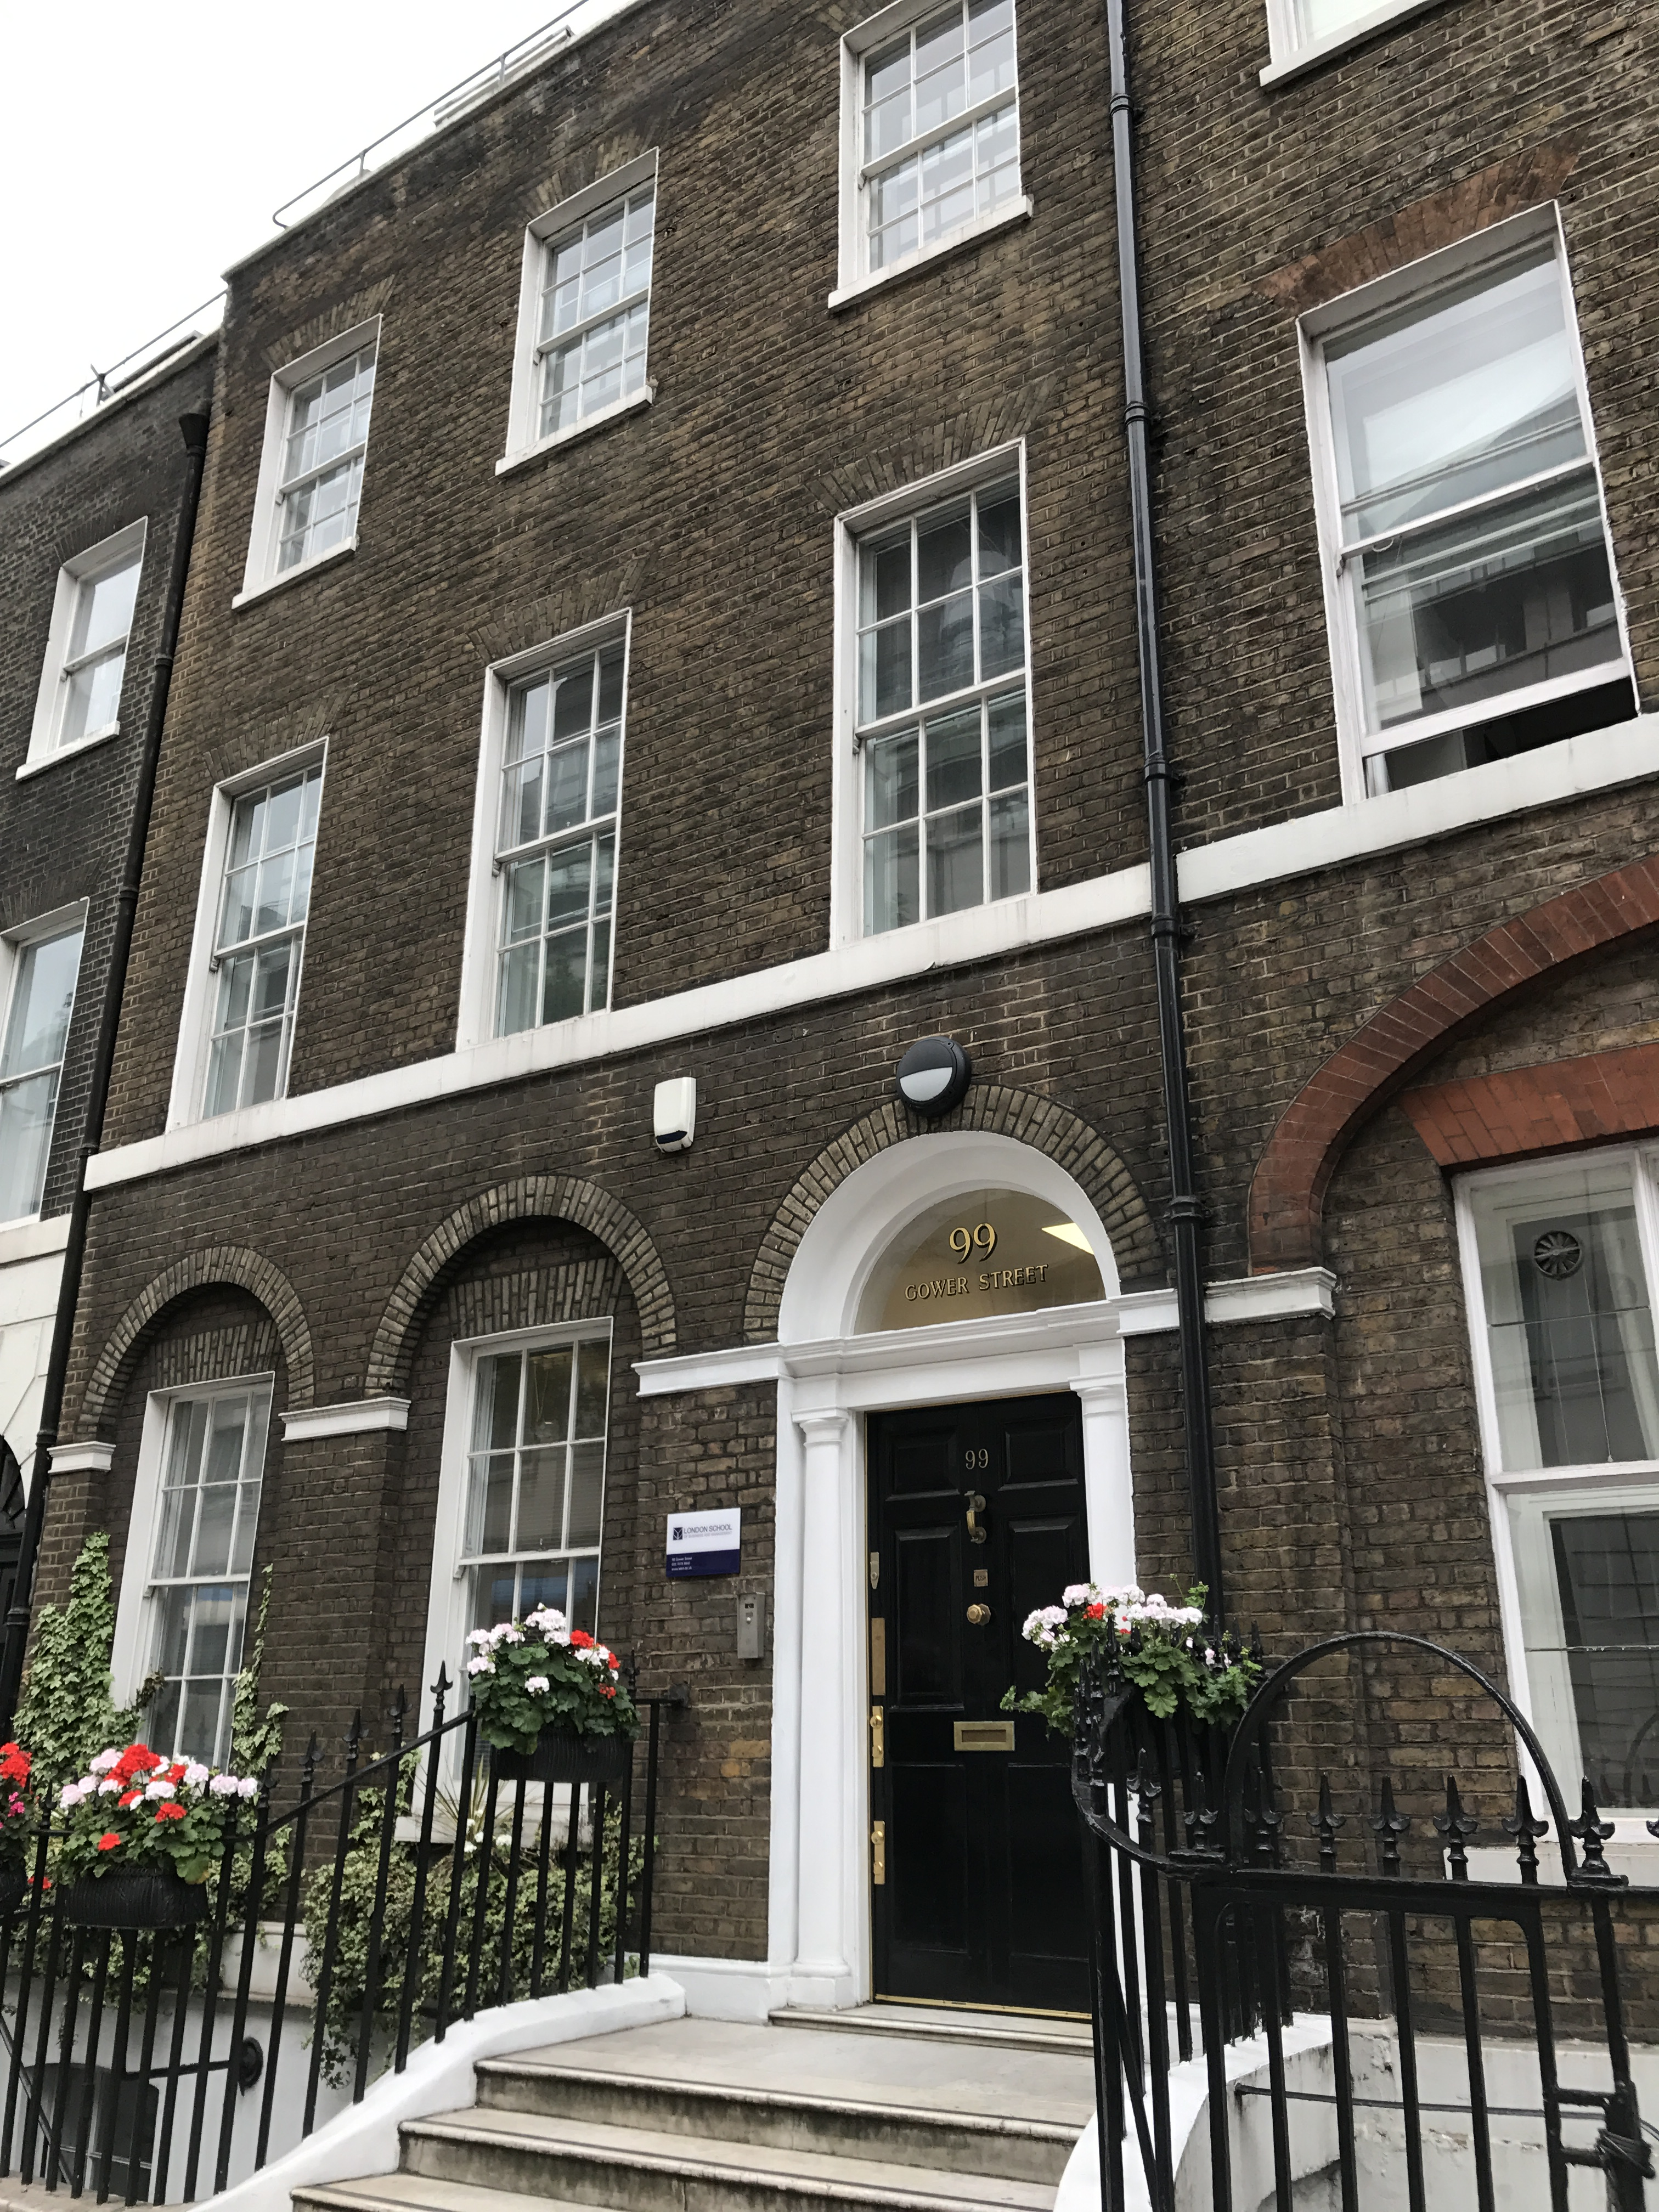 London School of Business and Management take self-contained education/office building in Gower Street